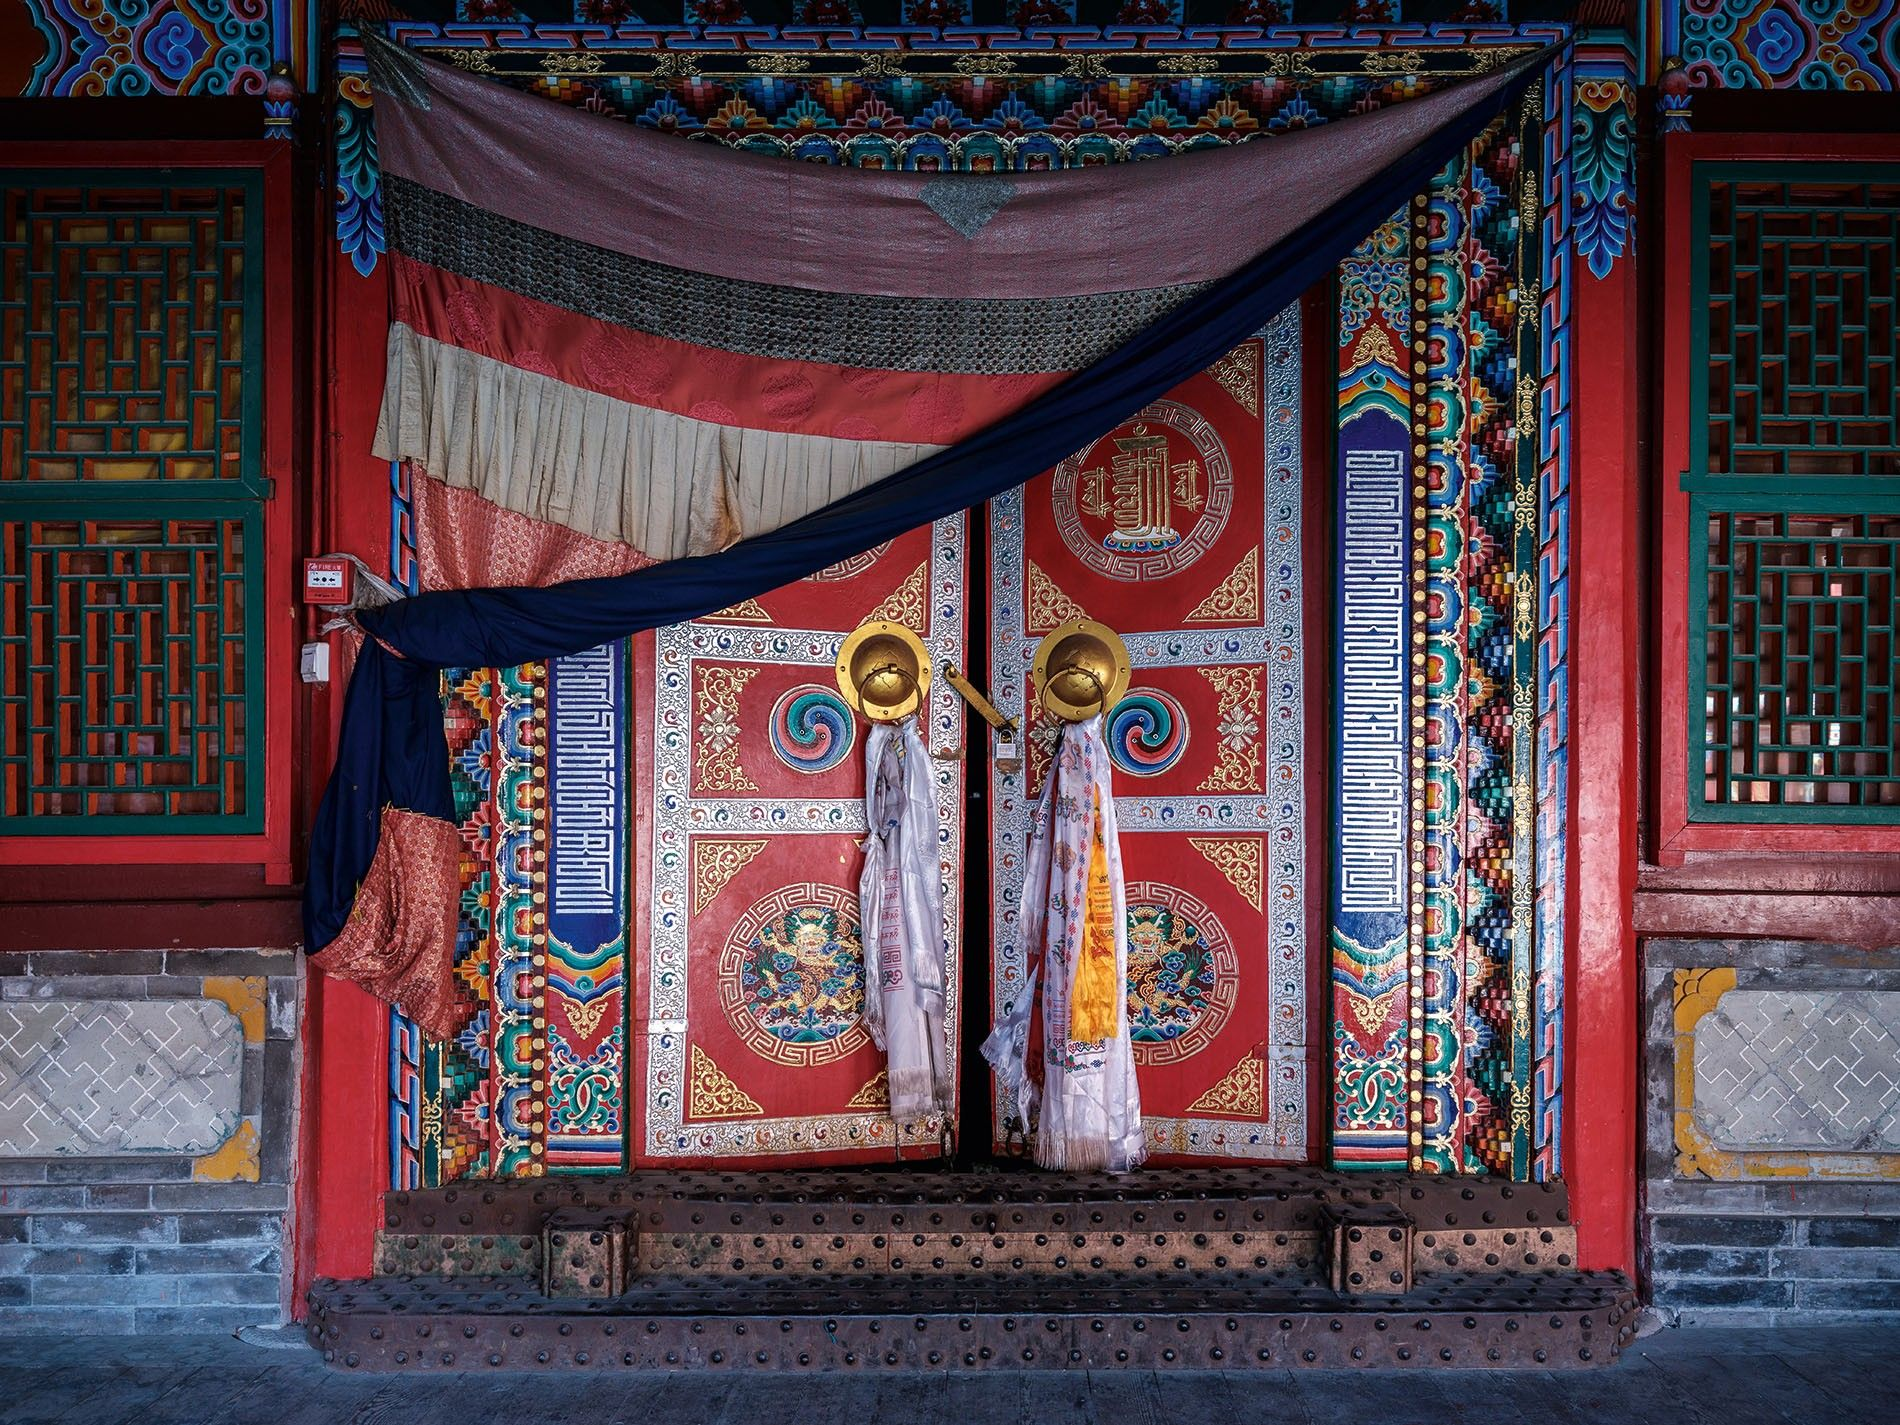 One of Kumbum monastery's many ornate doors